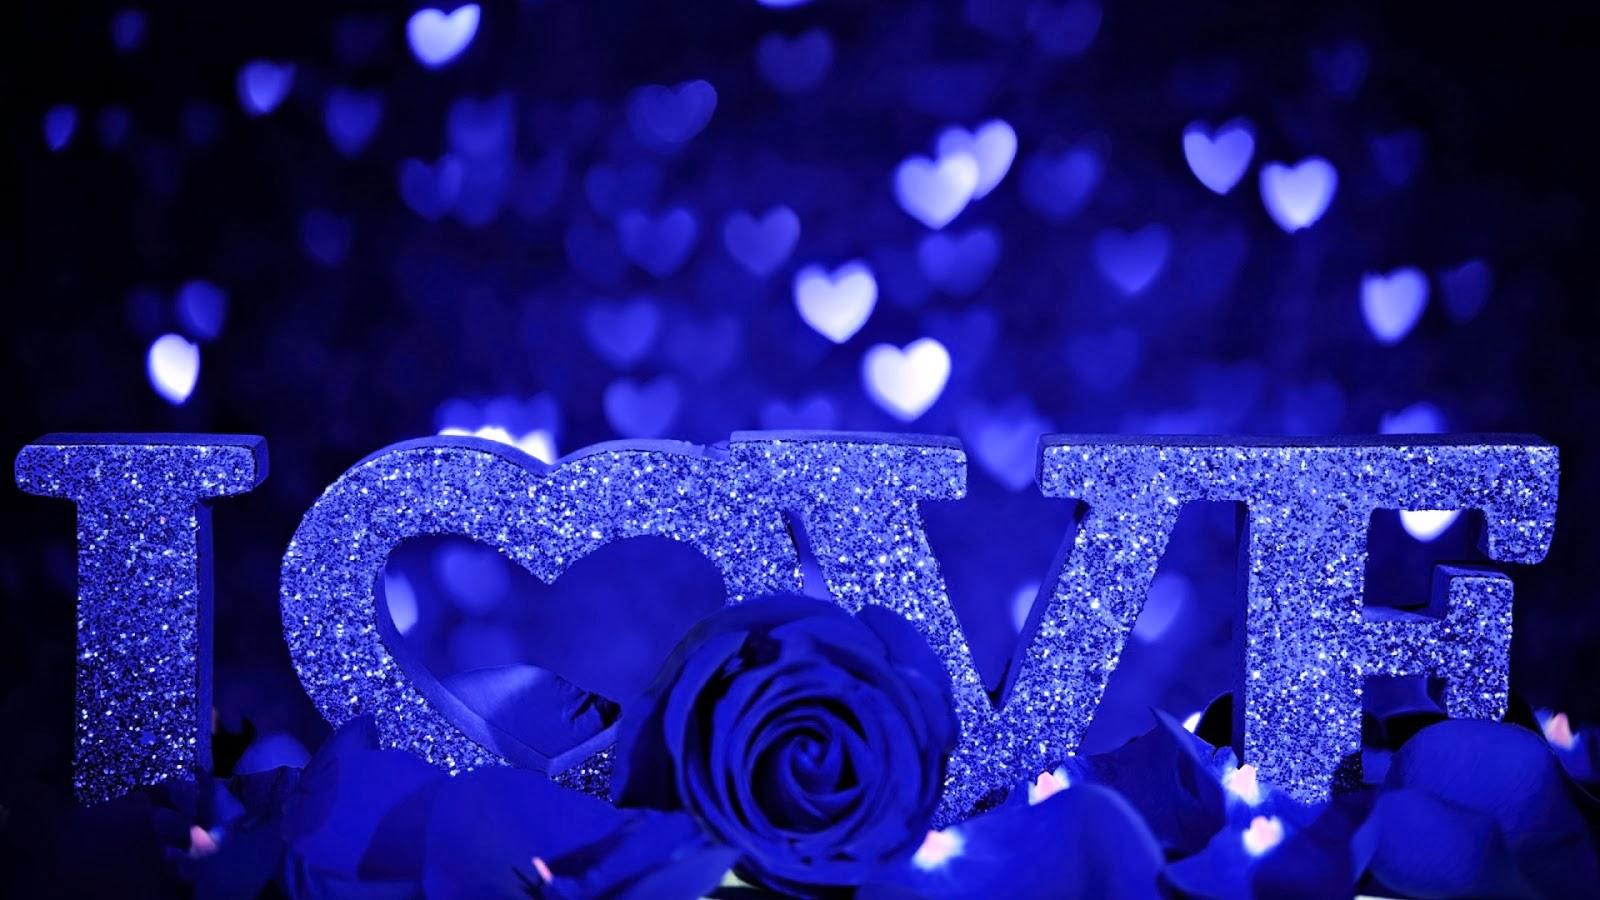 eletragesi: blue rose i love you images